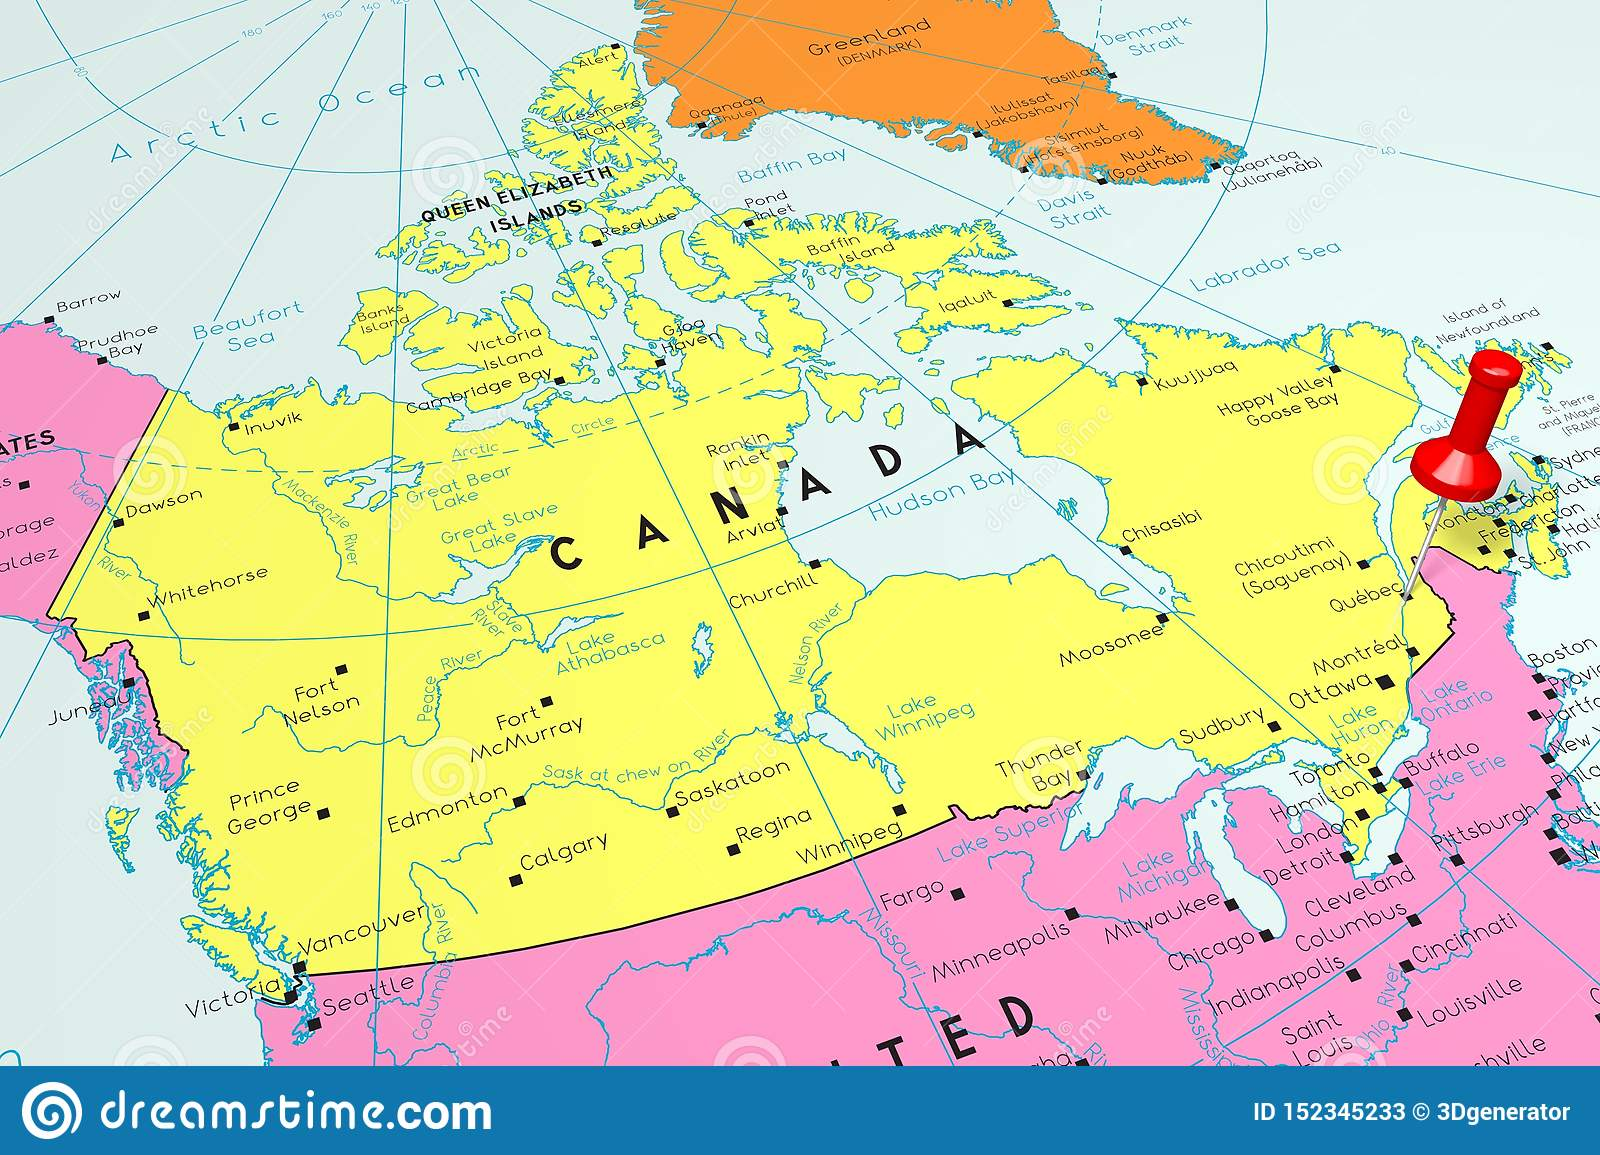 Canada, Quebec - Capital City, Pinned On Political Map Stock ... on canada town map, waterton lakes national park canada map, tadoussac canada map, quebec province zoom map, providence canada map, lorette canada map, beaufort sea canada location map, anchorage canada map, st john nb canada map, prince edward island map, iqaluit canada map, city of calgary canada map, albany canada map, tremblant canada map, regina canada map, lake nipissing canada map, cn tower canada map, edmonton canada map, montreal canada map, lake of the woods canada map,